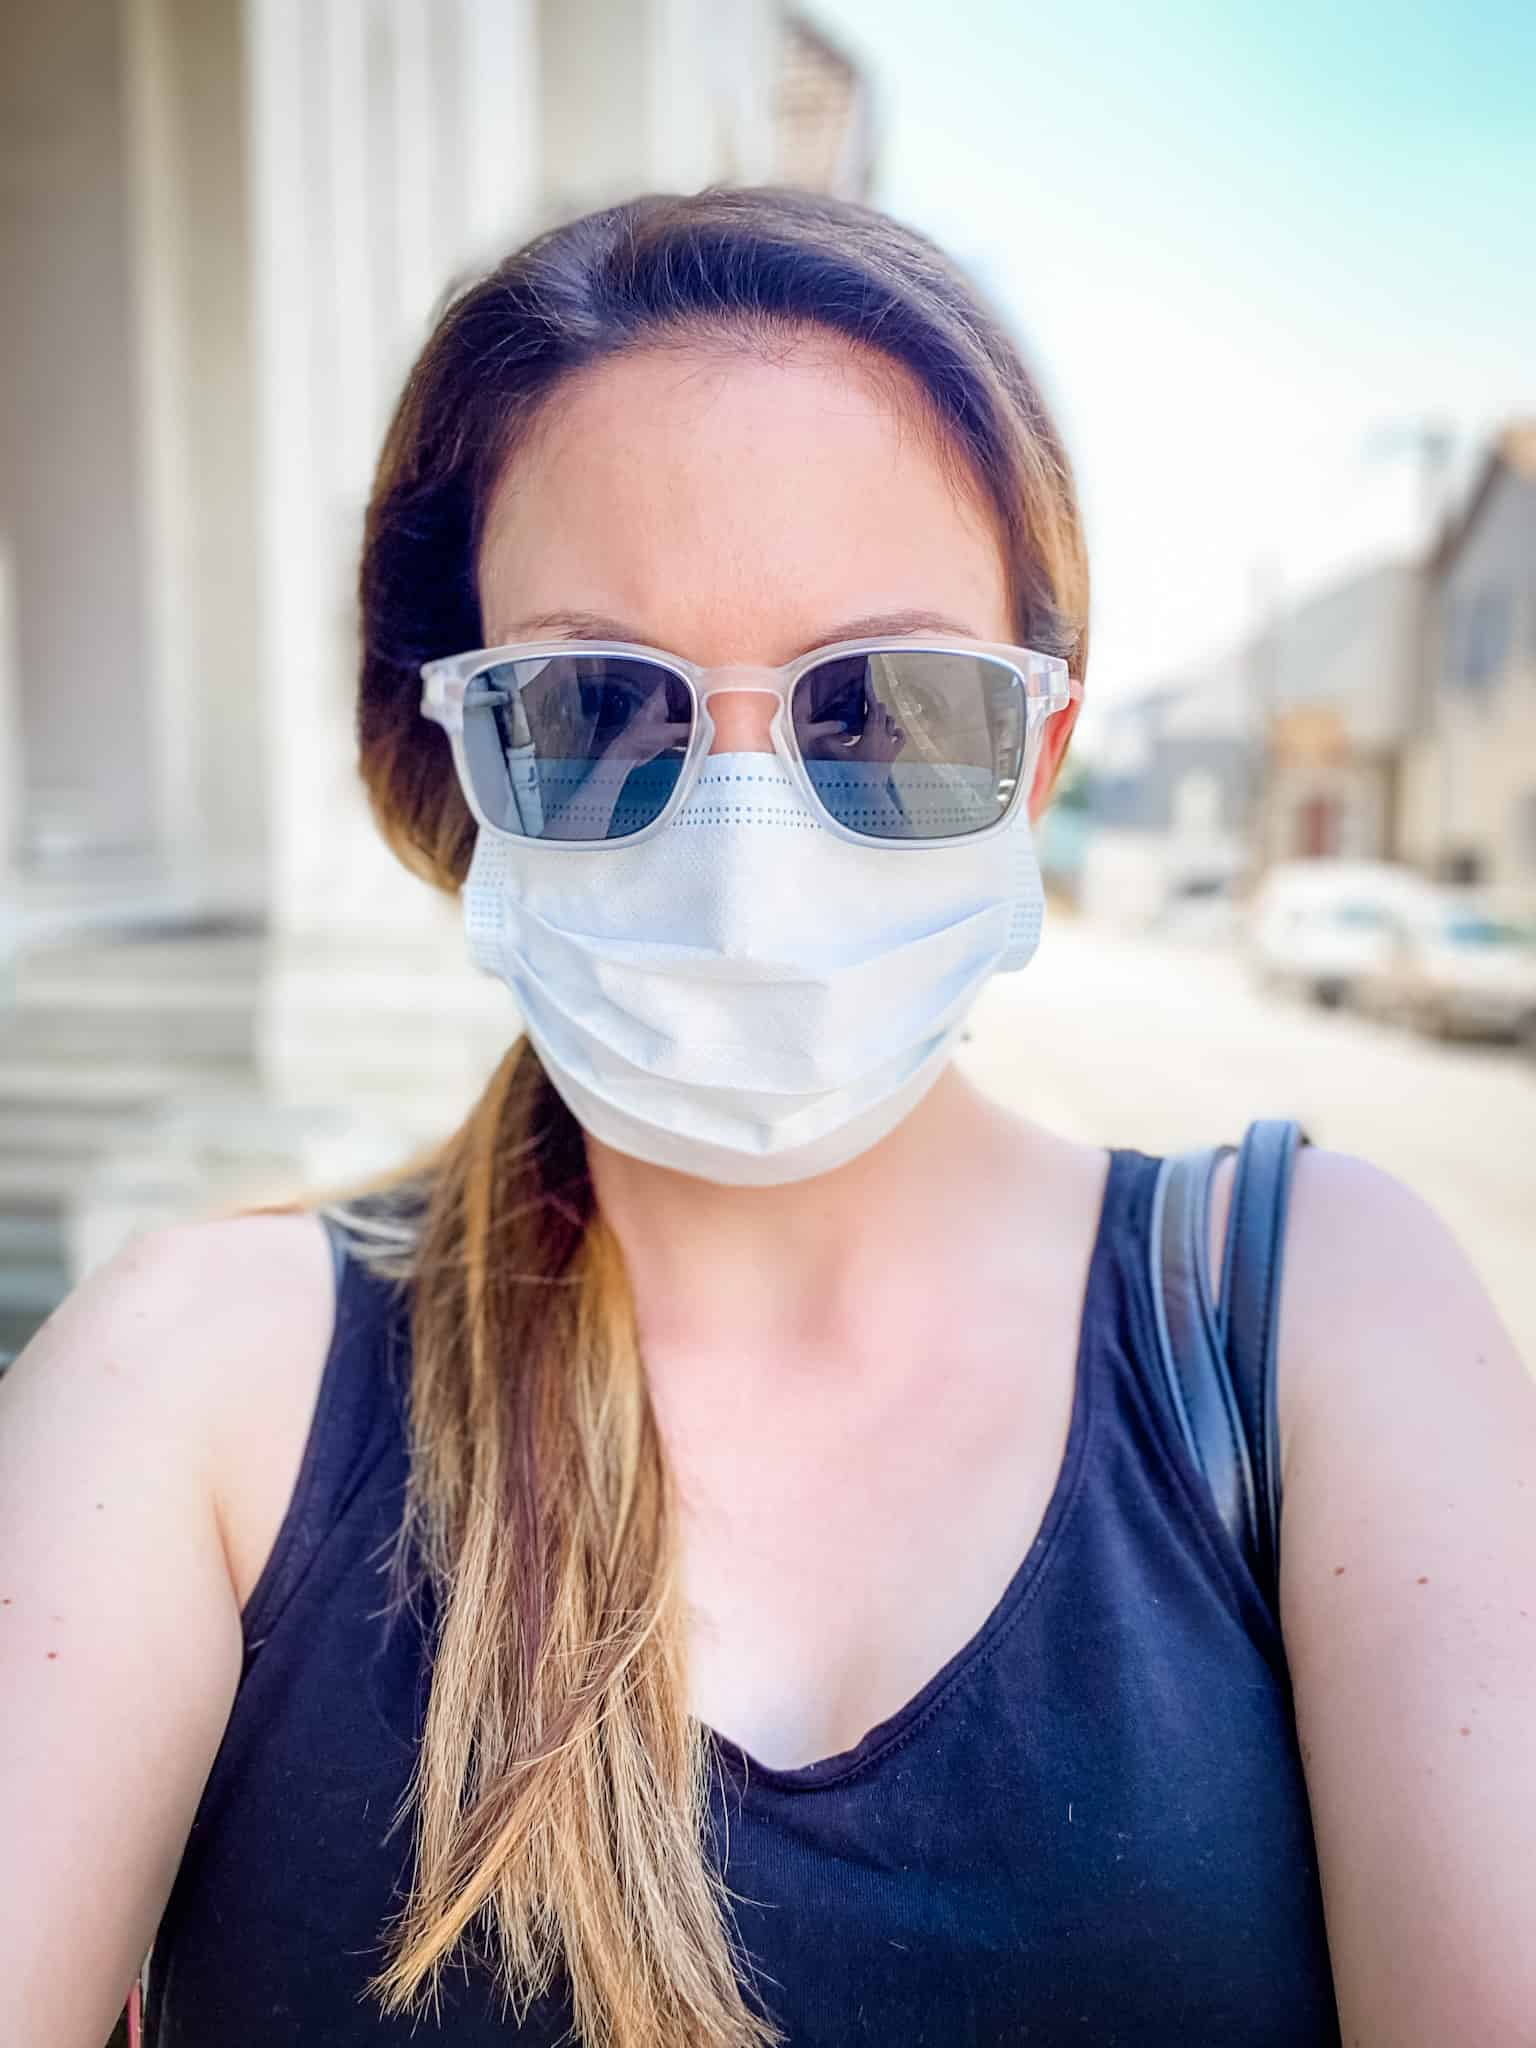 how wearing mask affects foreign language comprehension